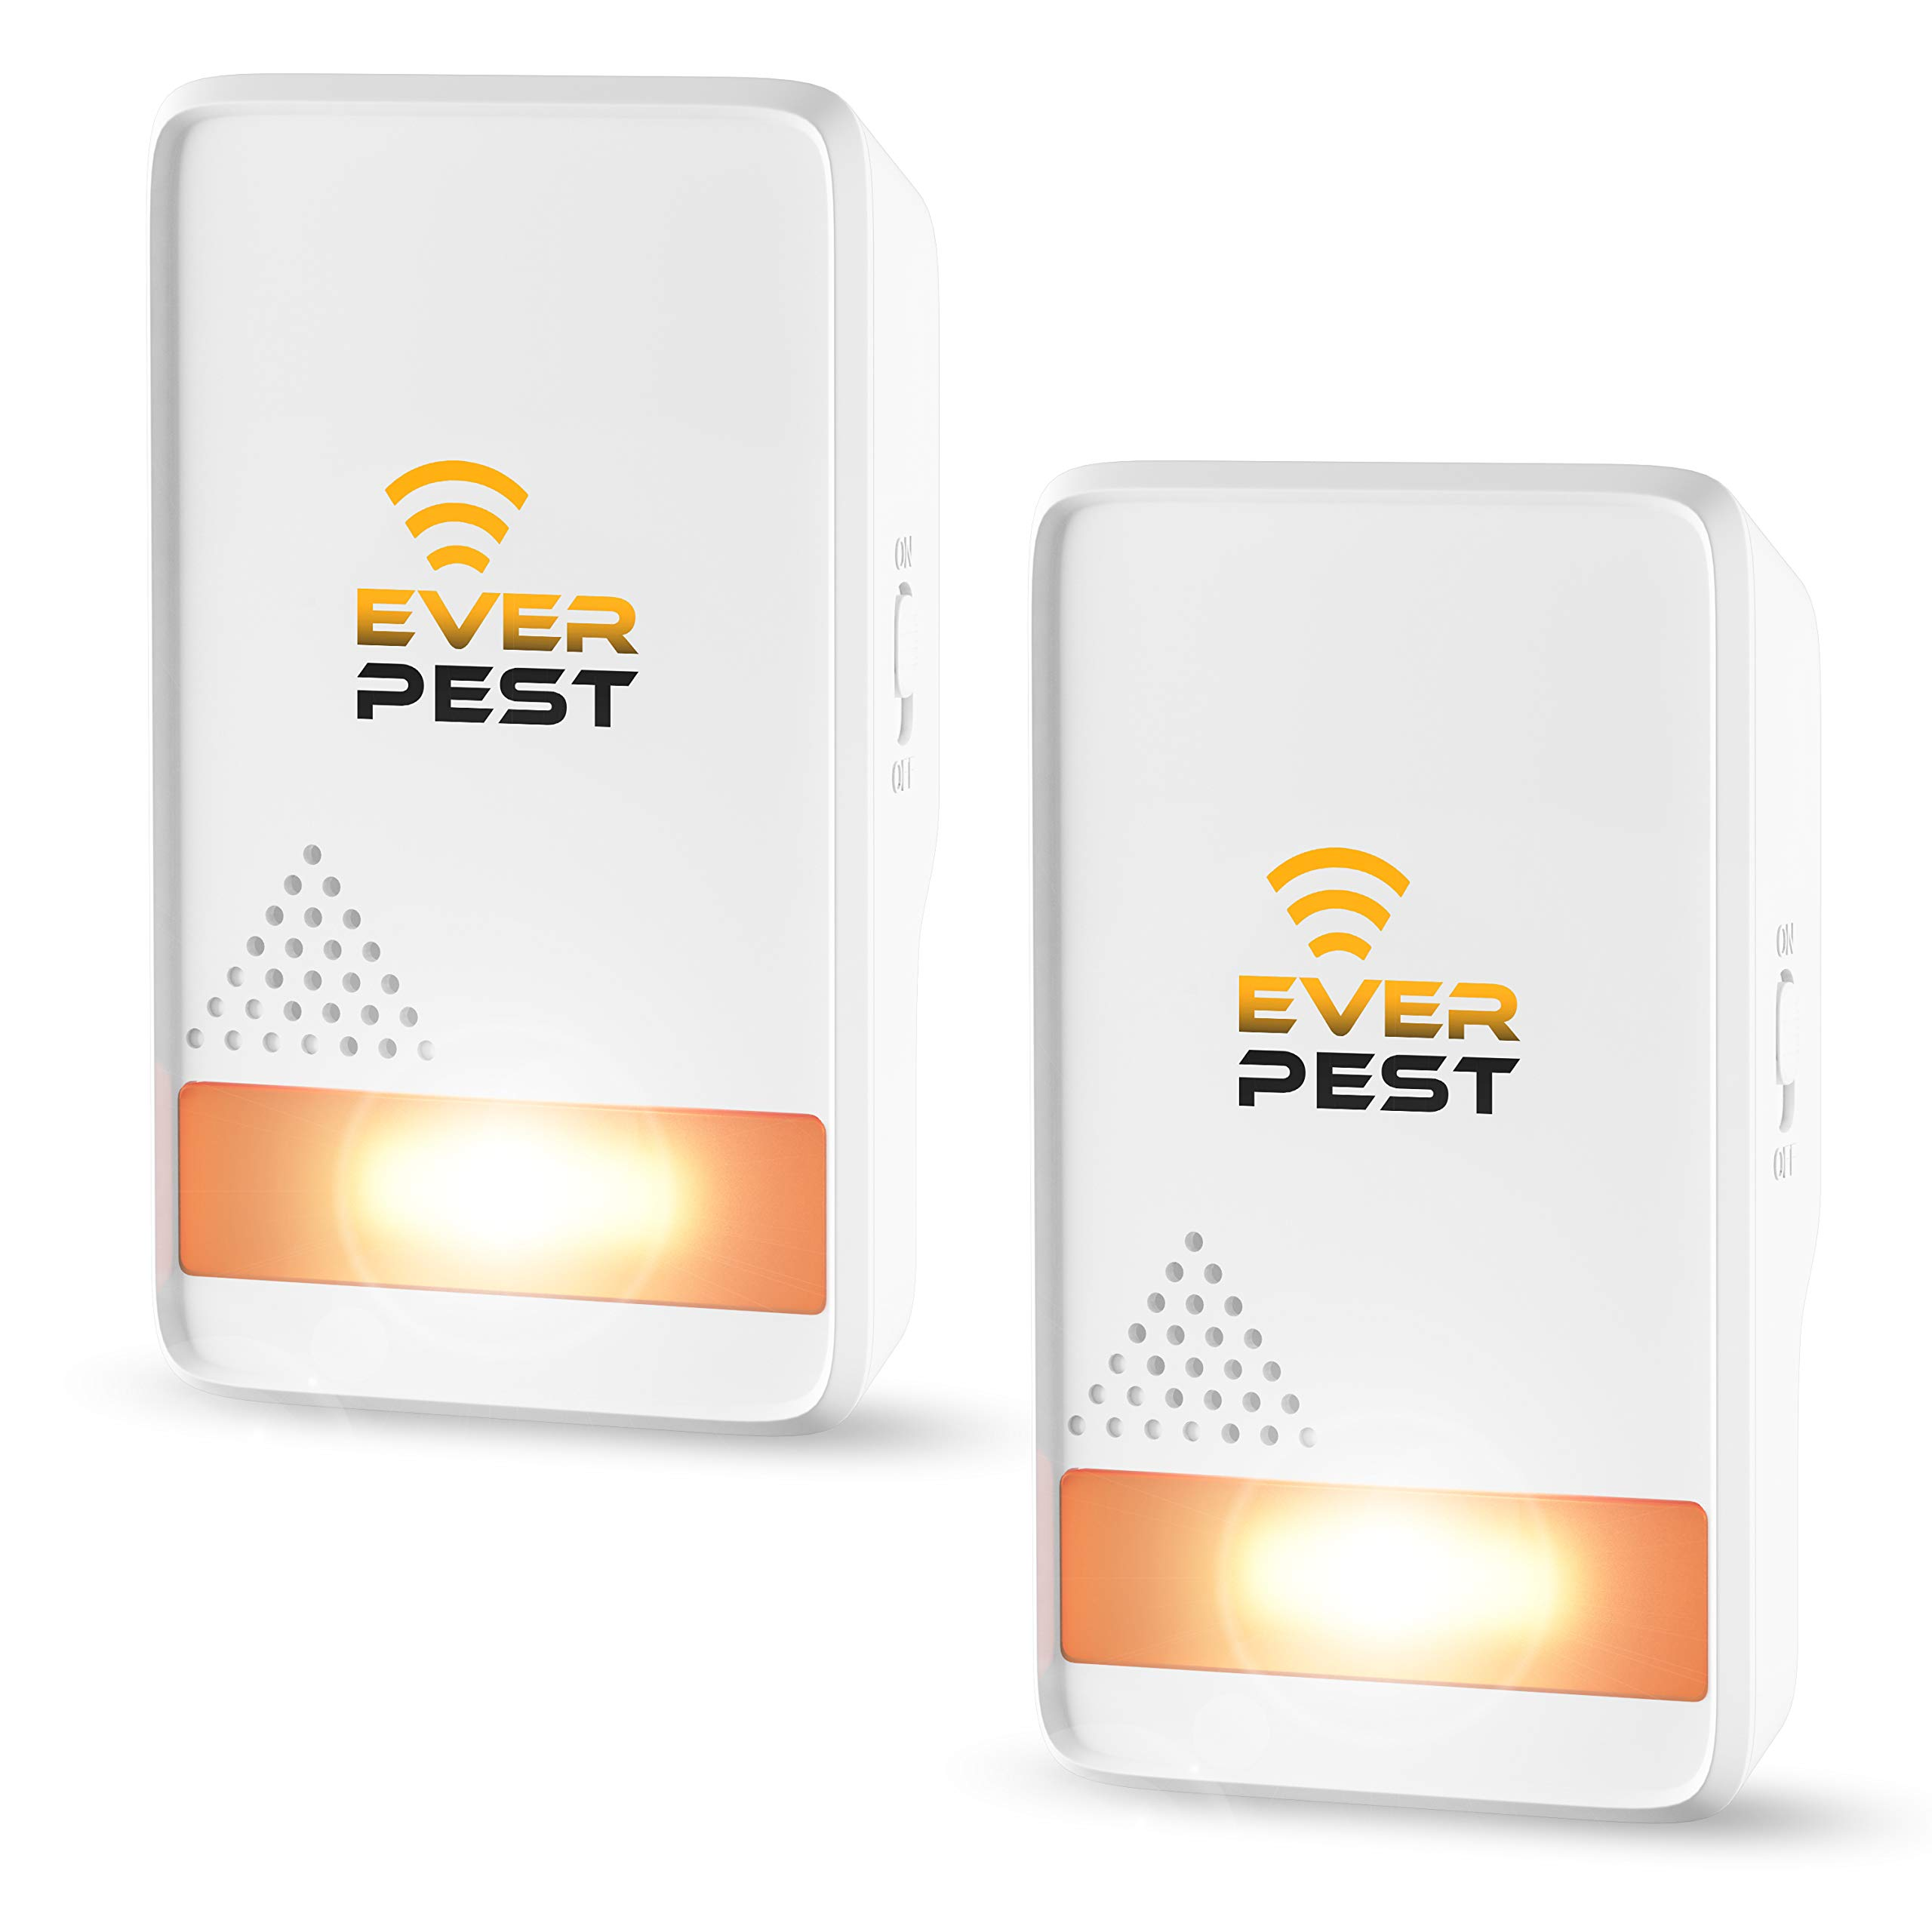 Ultrasonic Pest Repellent Control 2018 (2-Pack), Plug in Home Indoor and Outdoor Repeller, Get Rid of Mosquito, Ant, Flea, Rats, Roaches, Cockroaches, Fruit Fly, Rodent, Insect